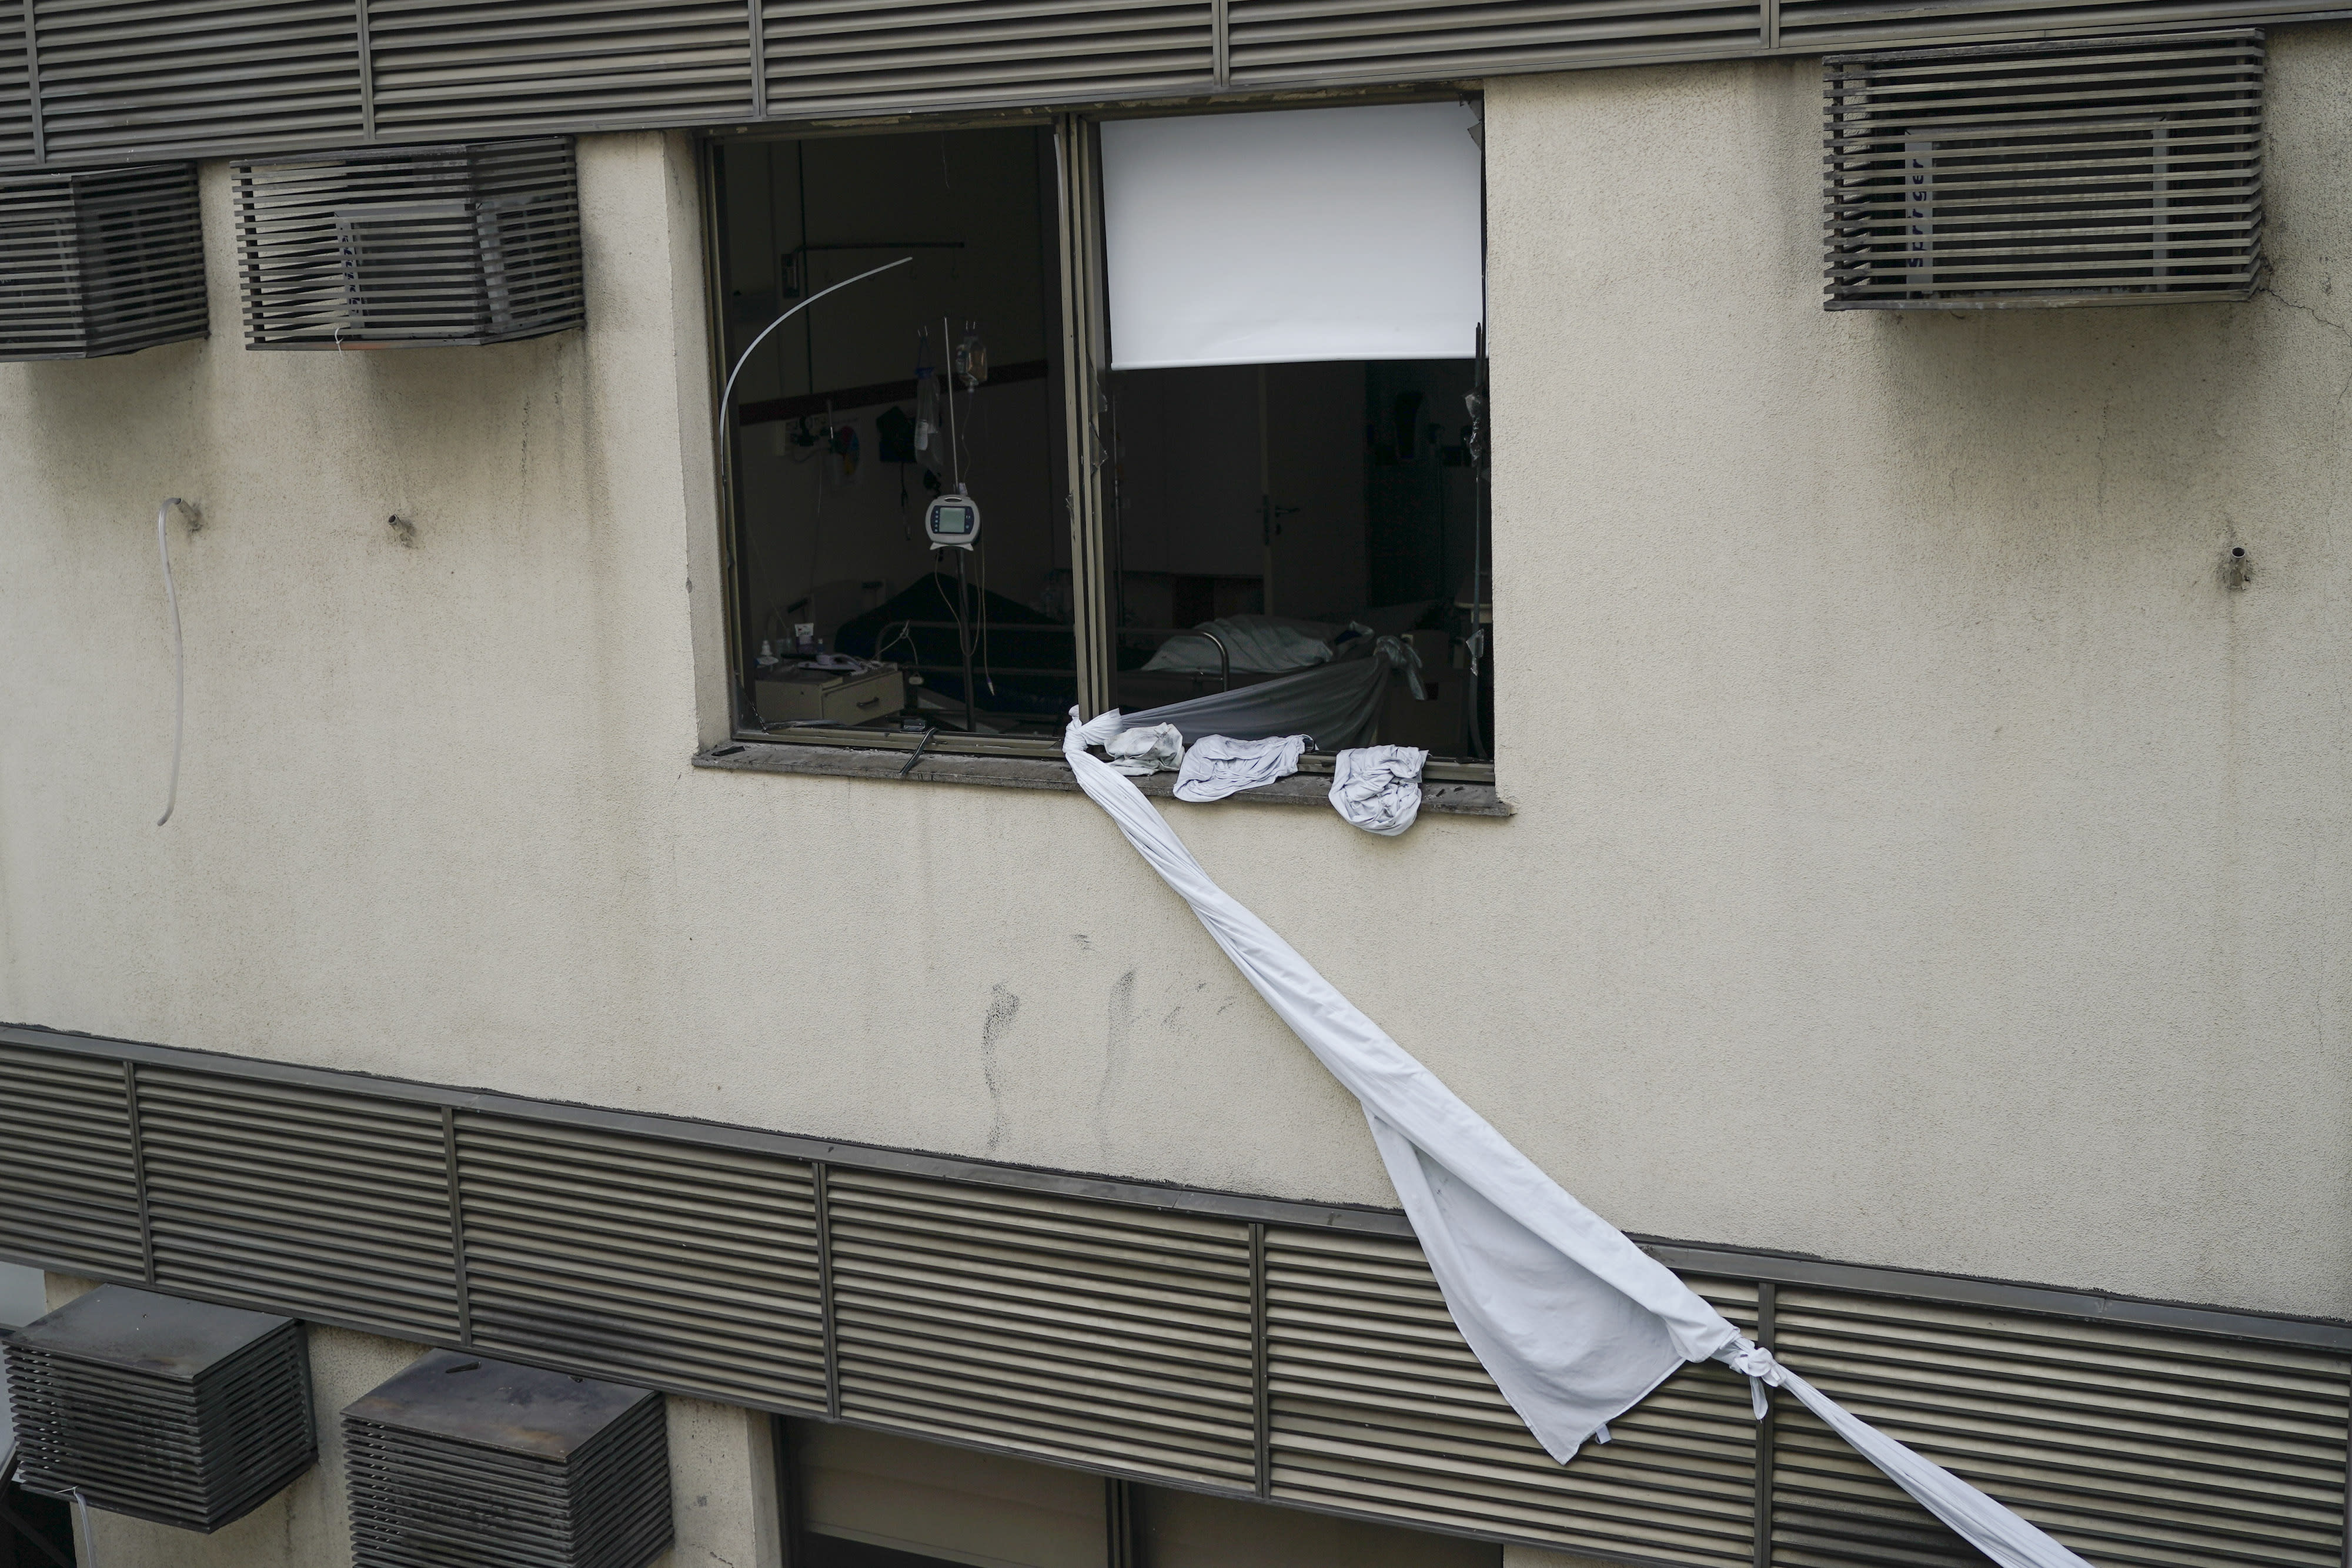 A rope made of bedsheets that was used to escape from the upper floor of the Badim Hospital, is seen tied to a window, where a fire left at least 11 people dead, in Rio de Janeiro, Brazil, Friday, Sept. 13, 2019. The fire raced through the hospital forcing staff to wheel patients into the streets on beds or in wheelchairs. (AP Photo/Leo Correa)